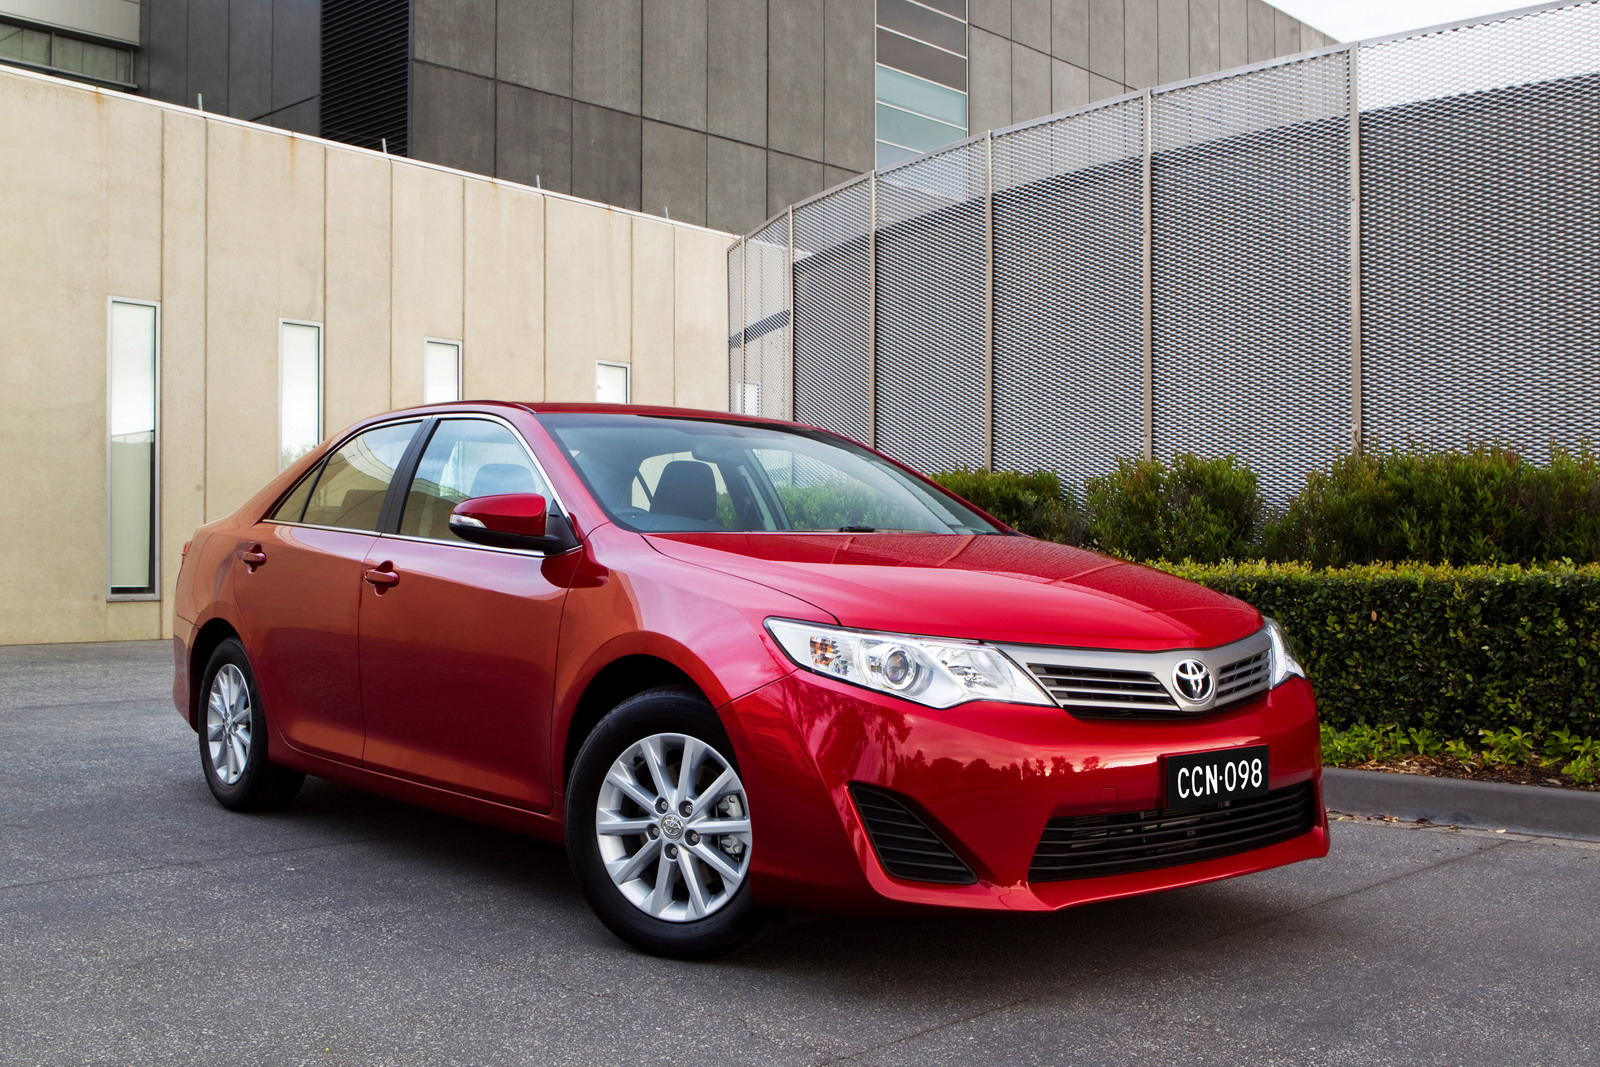 brand new toyota camry price in australia fitur tersembunyi grand avanza 2012 for unveiled autoevolution